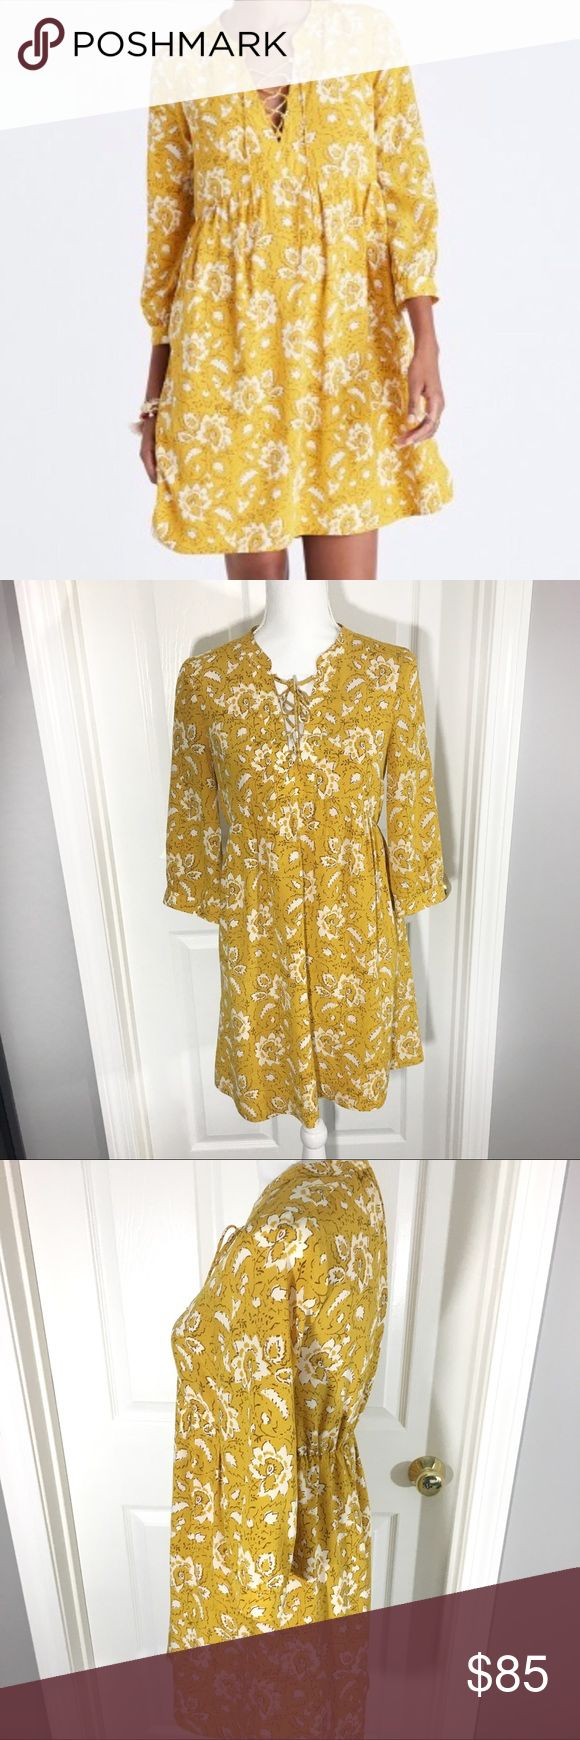 Madewell Silk Assam Yellow Floral Dress EUC - only flaw is a missing sleeve button 100% Silk Dry clean only Lace up front Madewell Dresses